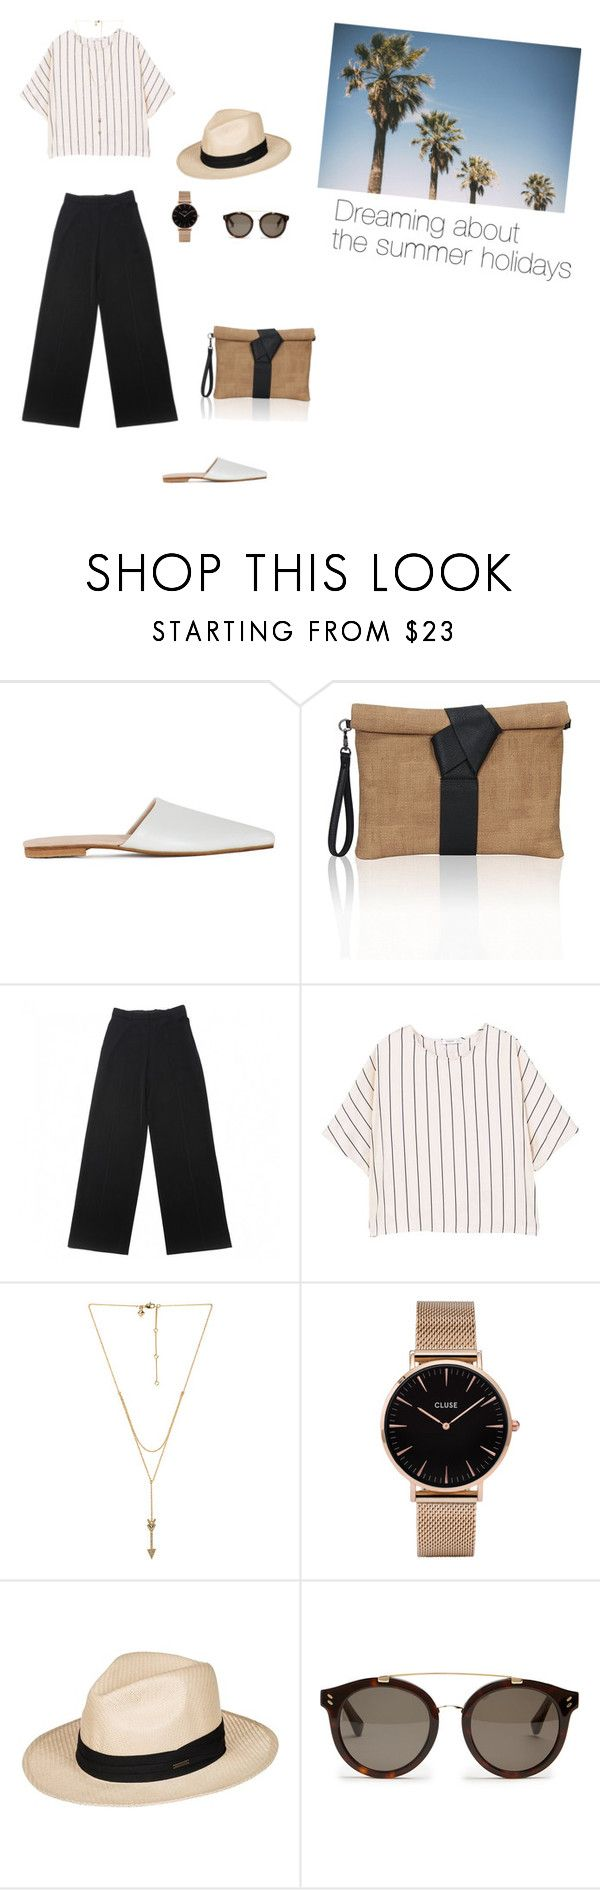 """Can't wait the summer holidays"" by dorey on Polyvore featuring Brother Vellies, Yves Saint Laurent, MANGO, Rebecca Minkoff, CLUSE, Roxy and STELLA McCARTNEY"